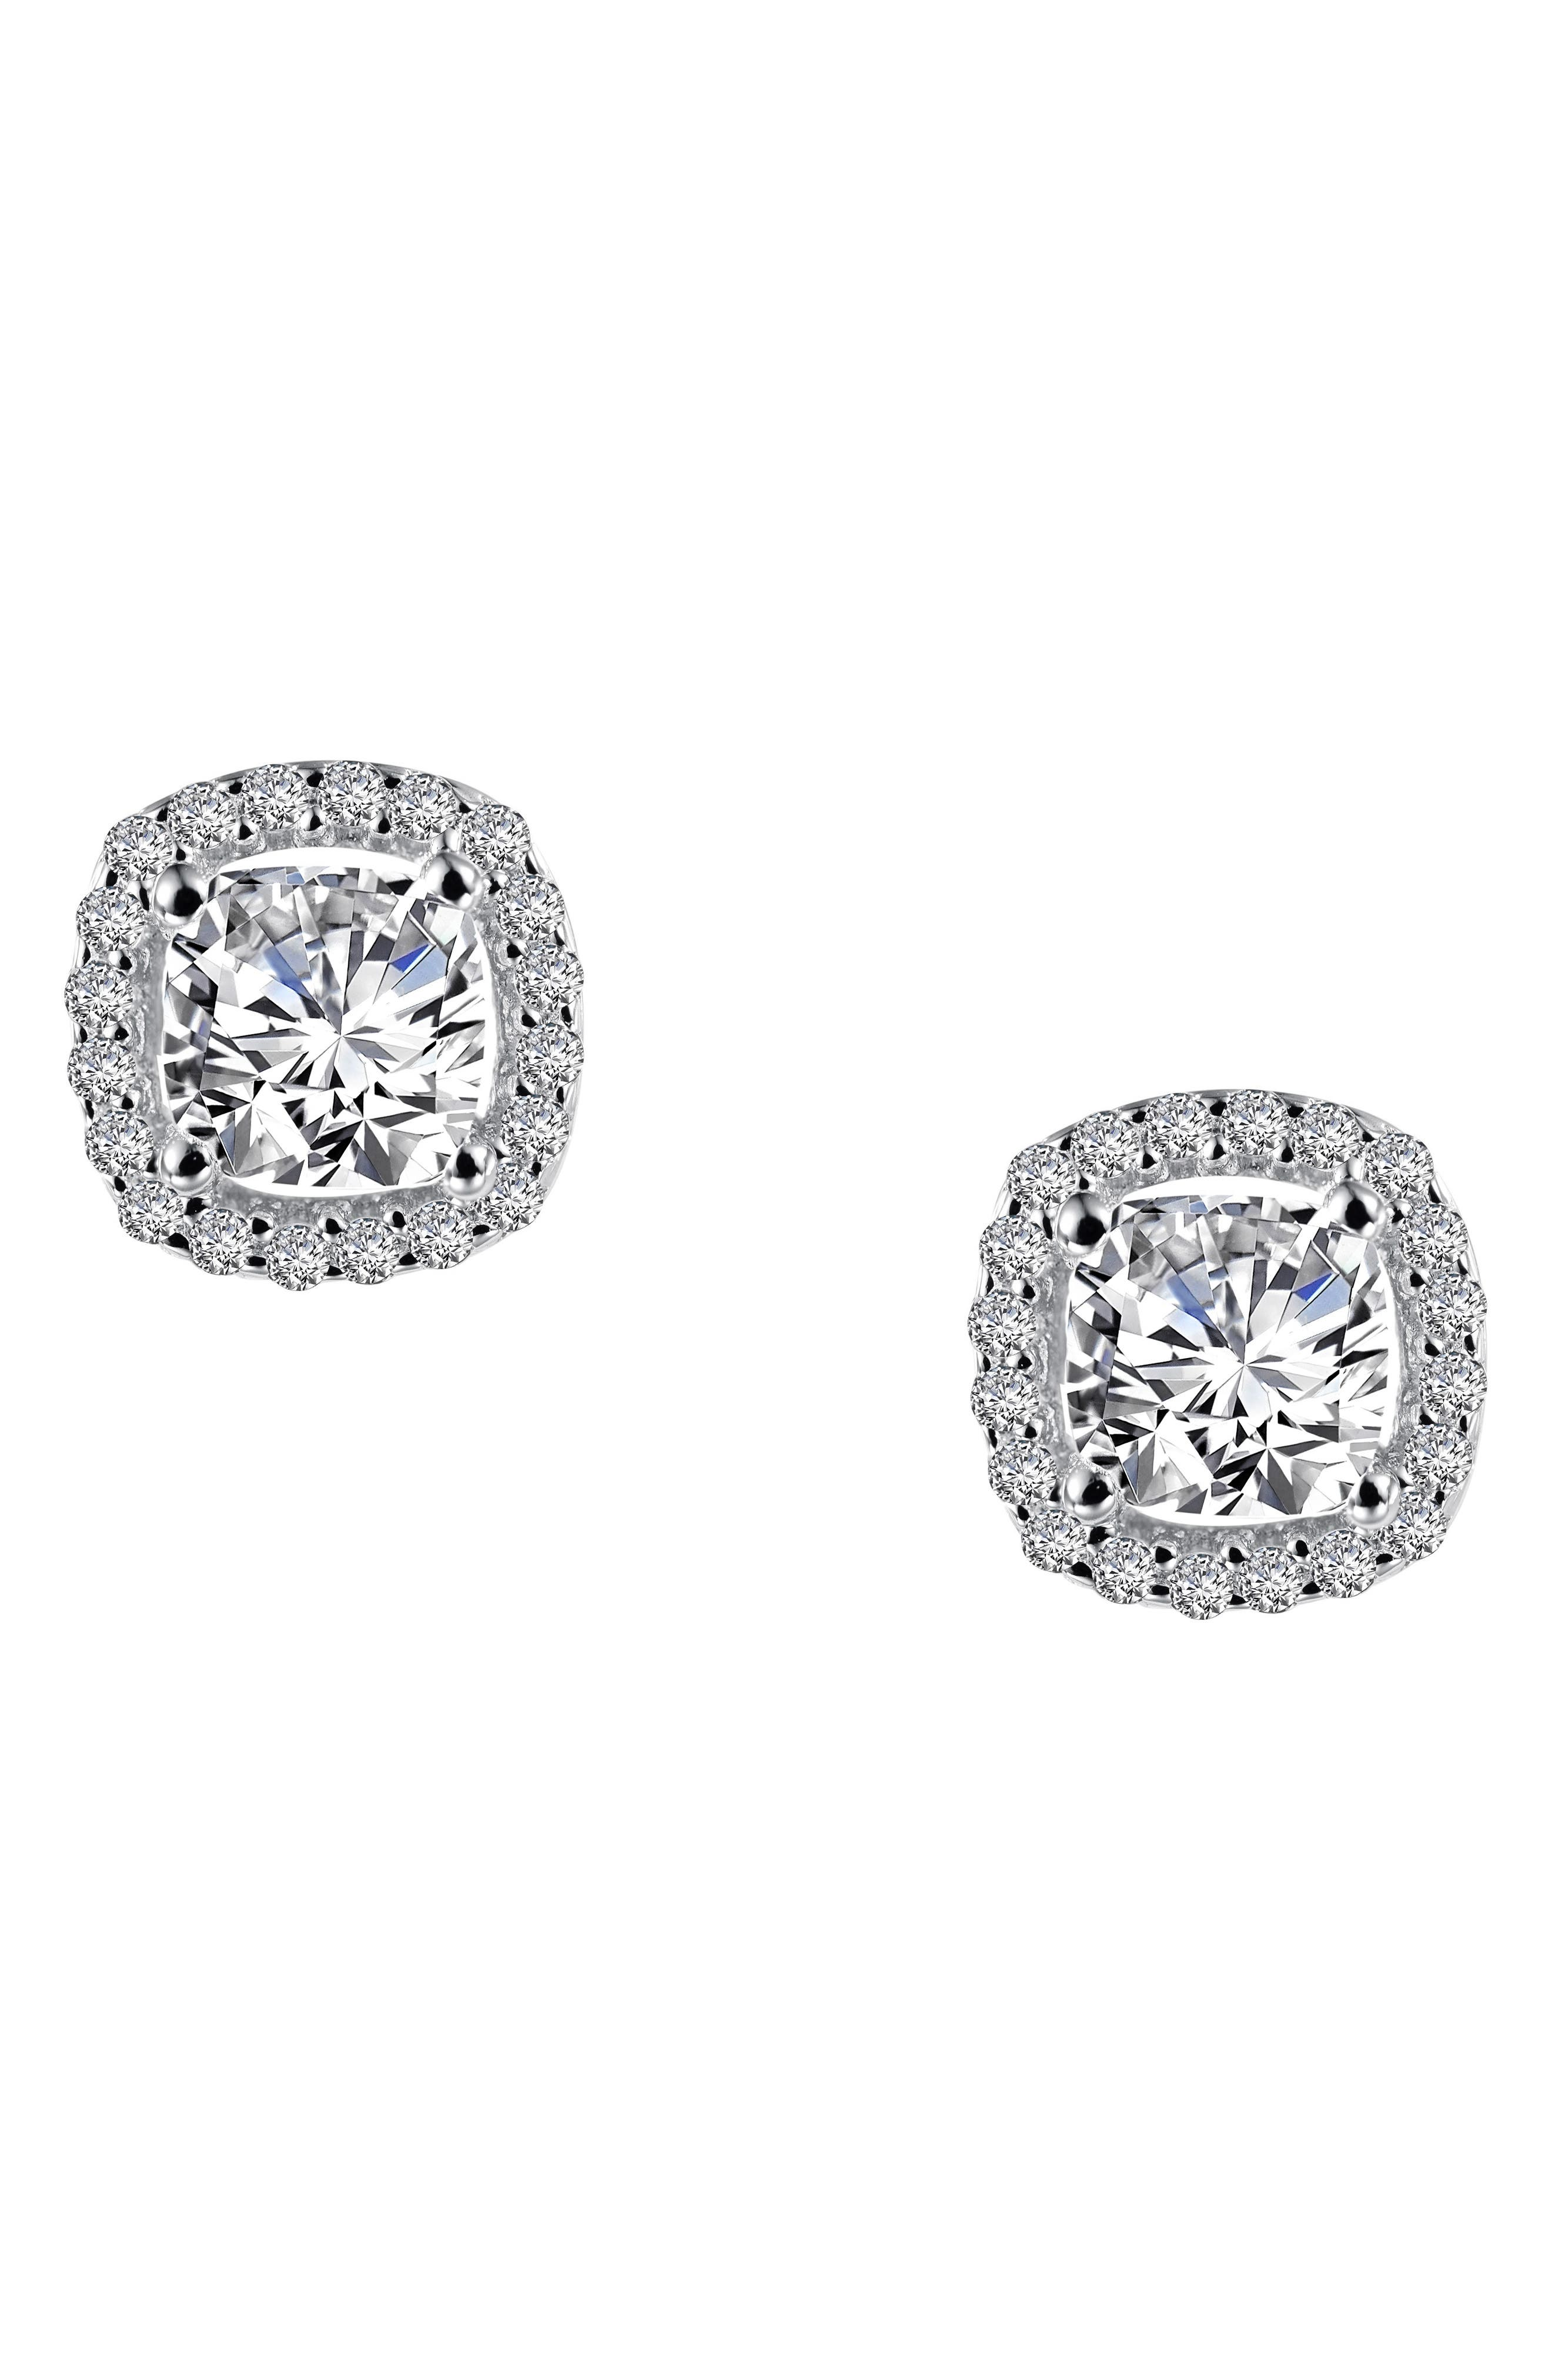 Cushion Cut Simulated Diamond Stud Earrings,                             Alternate thumbnail 3, color,                             Silver/ Clear